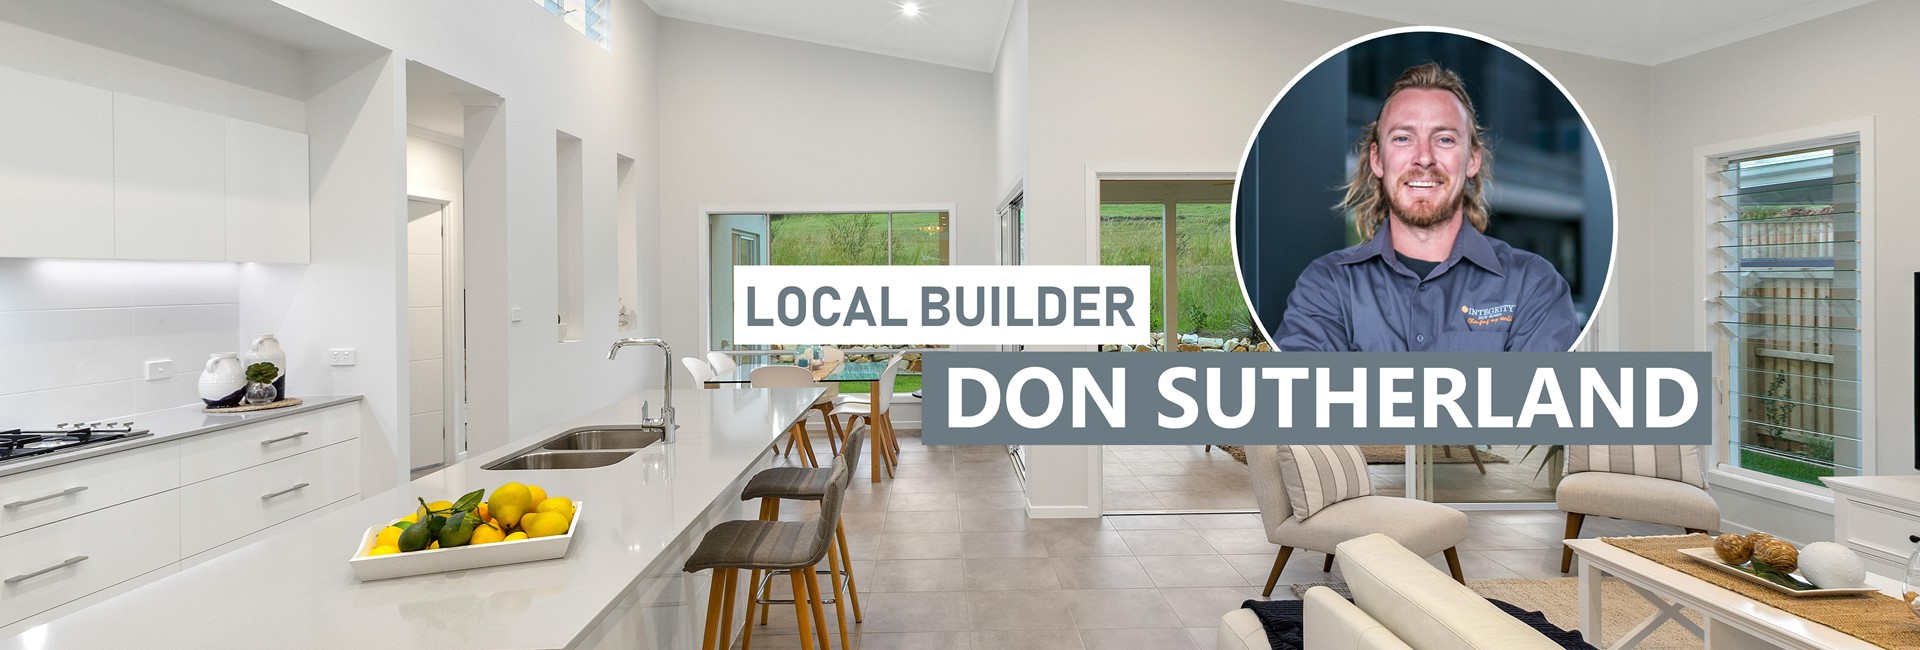 Local new home builder central coast, newcastle region Don Sutherland. Integrity New Homes Central Coast.